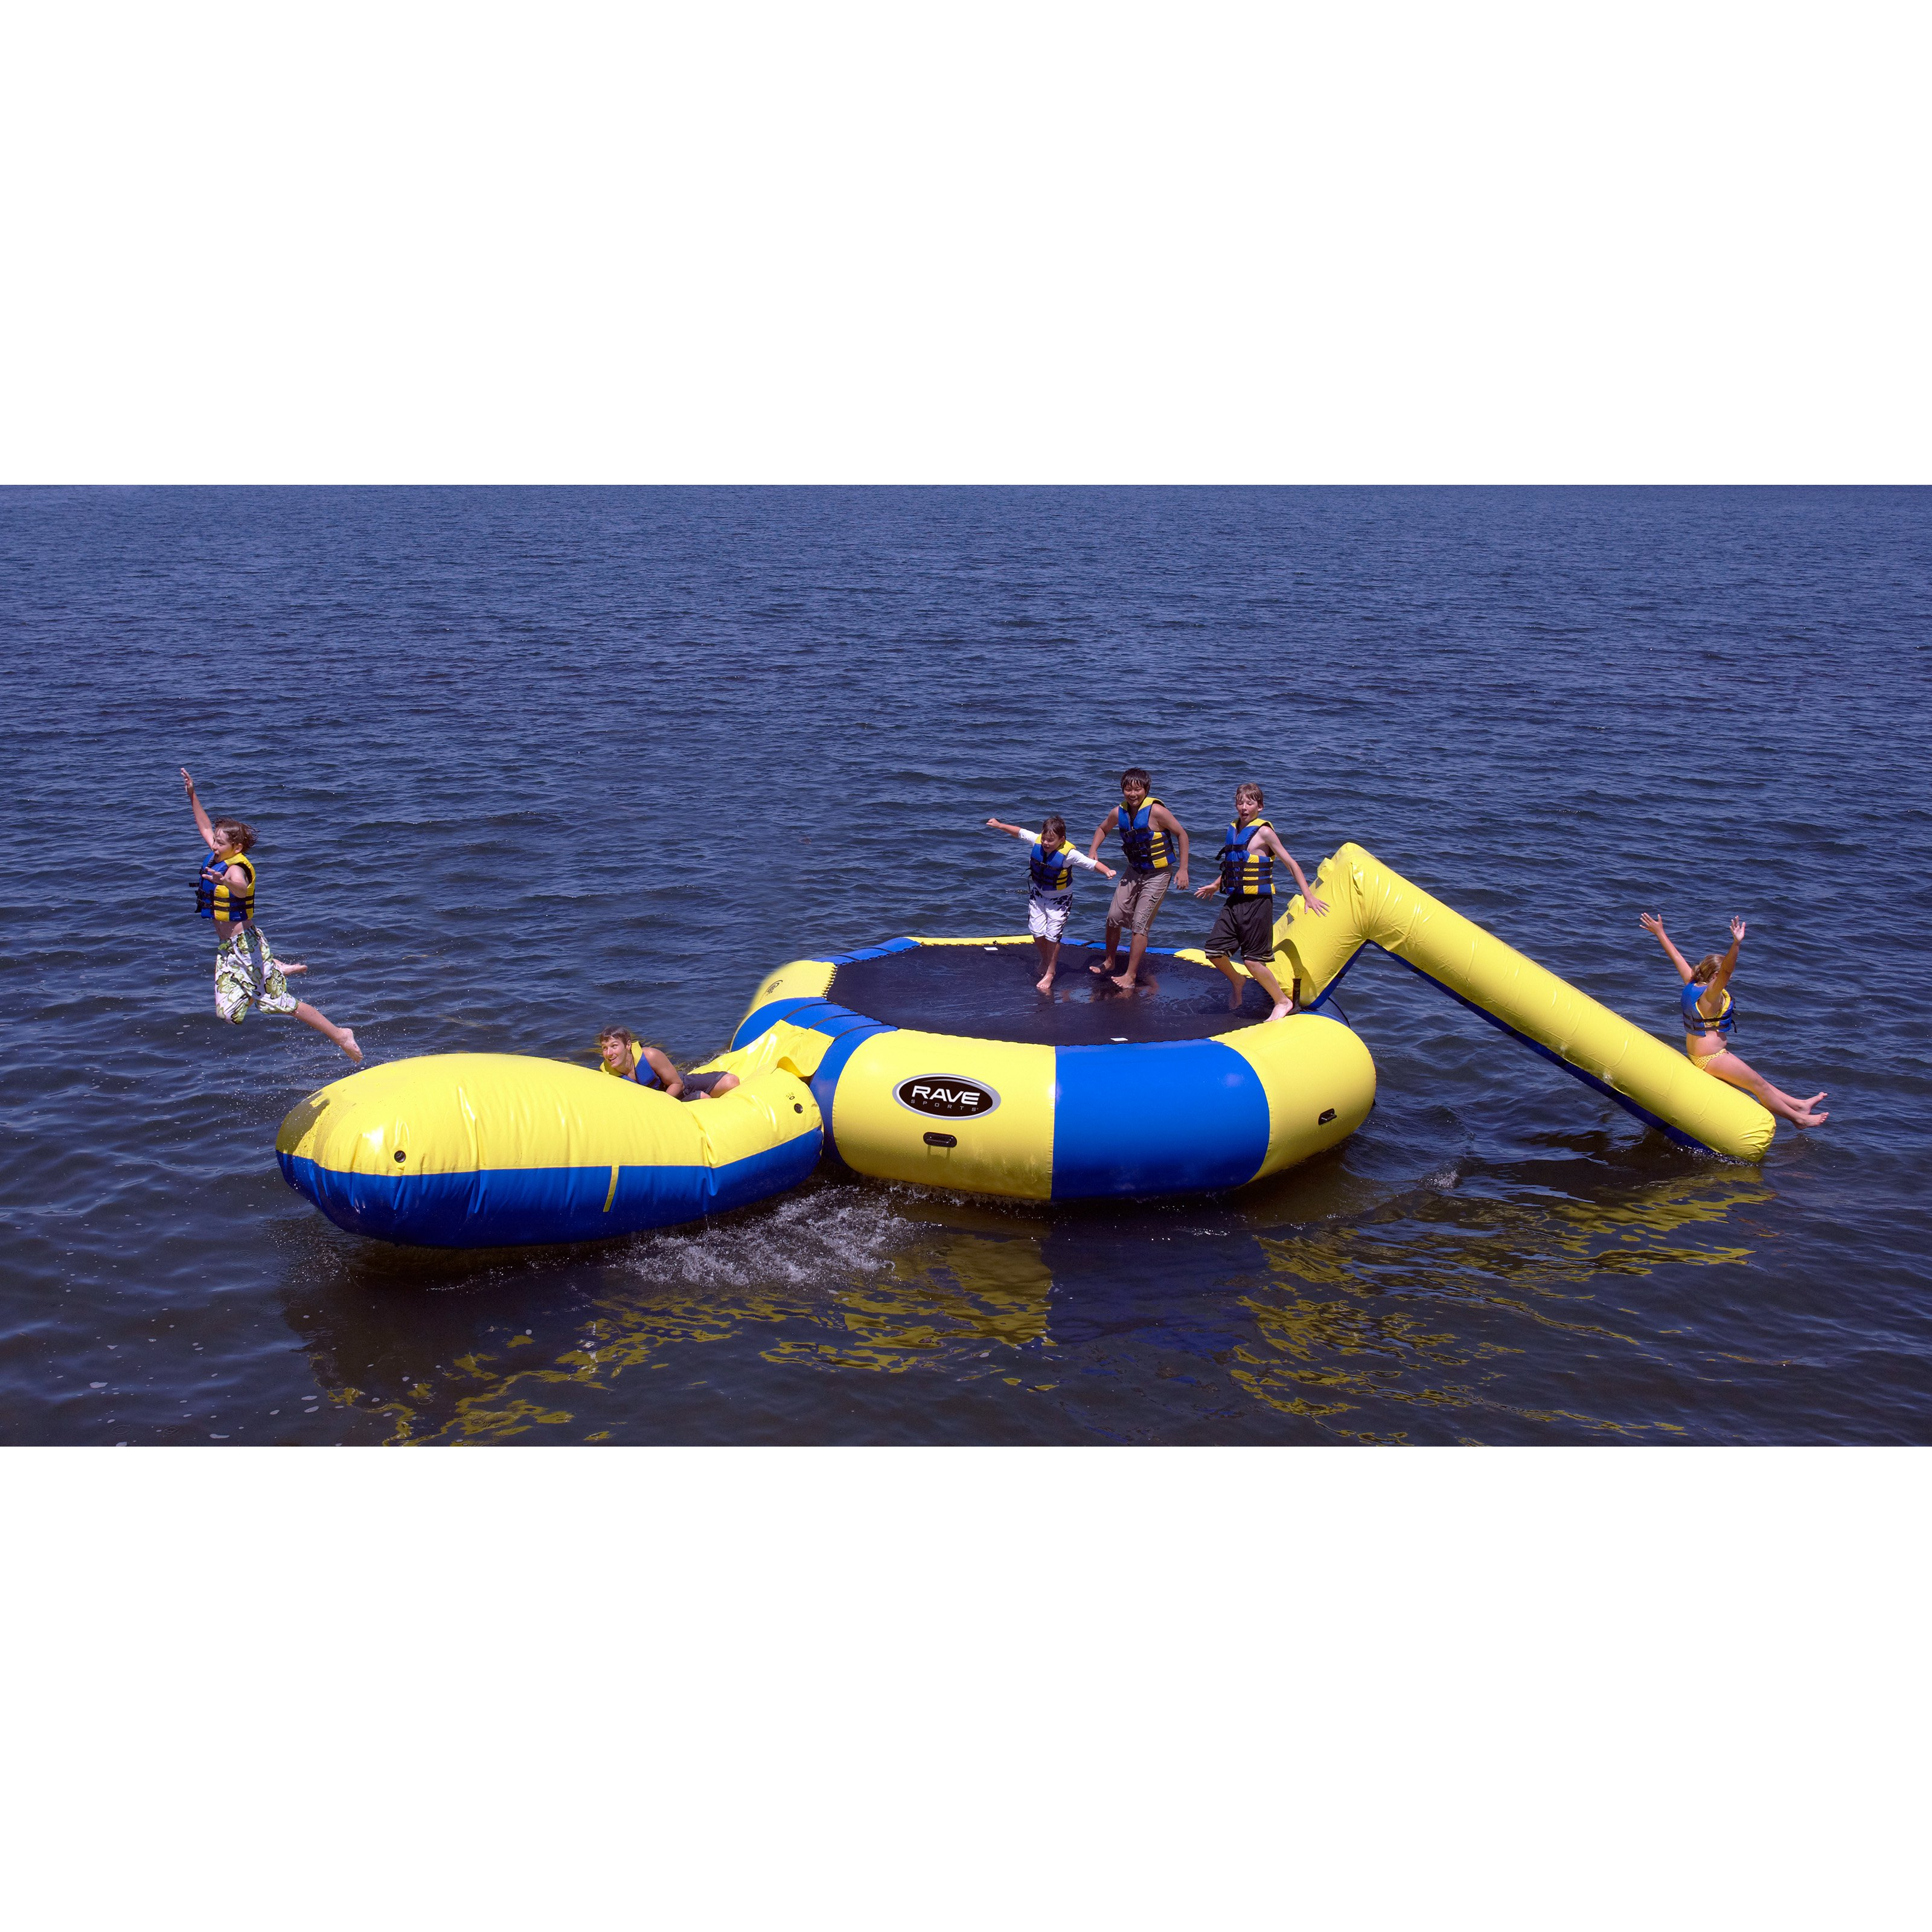 Rave Sports Bongo 20 ft. Water Trampoline with Slide and Launch by Rave Sports